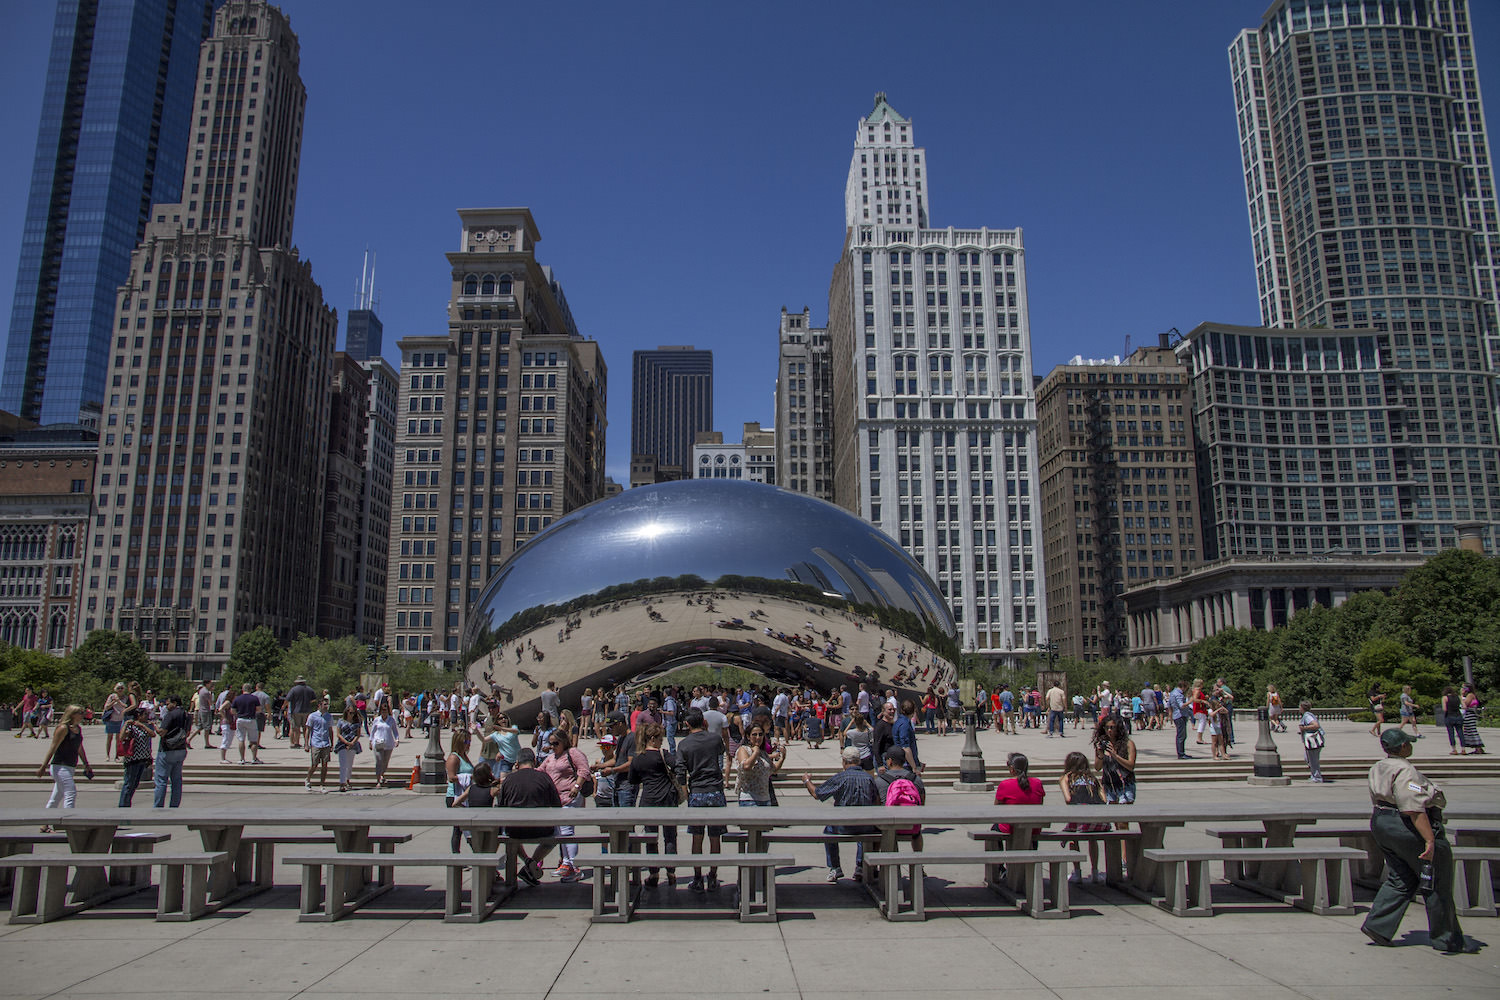 """Look it's the famous Bean. Did you know its r eal name is """"Cloud Gate""""?"""